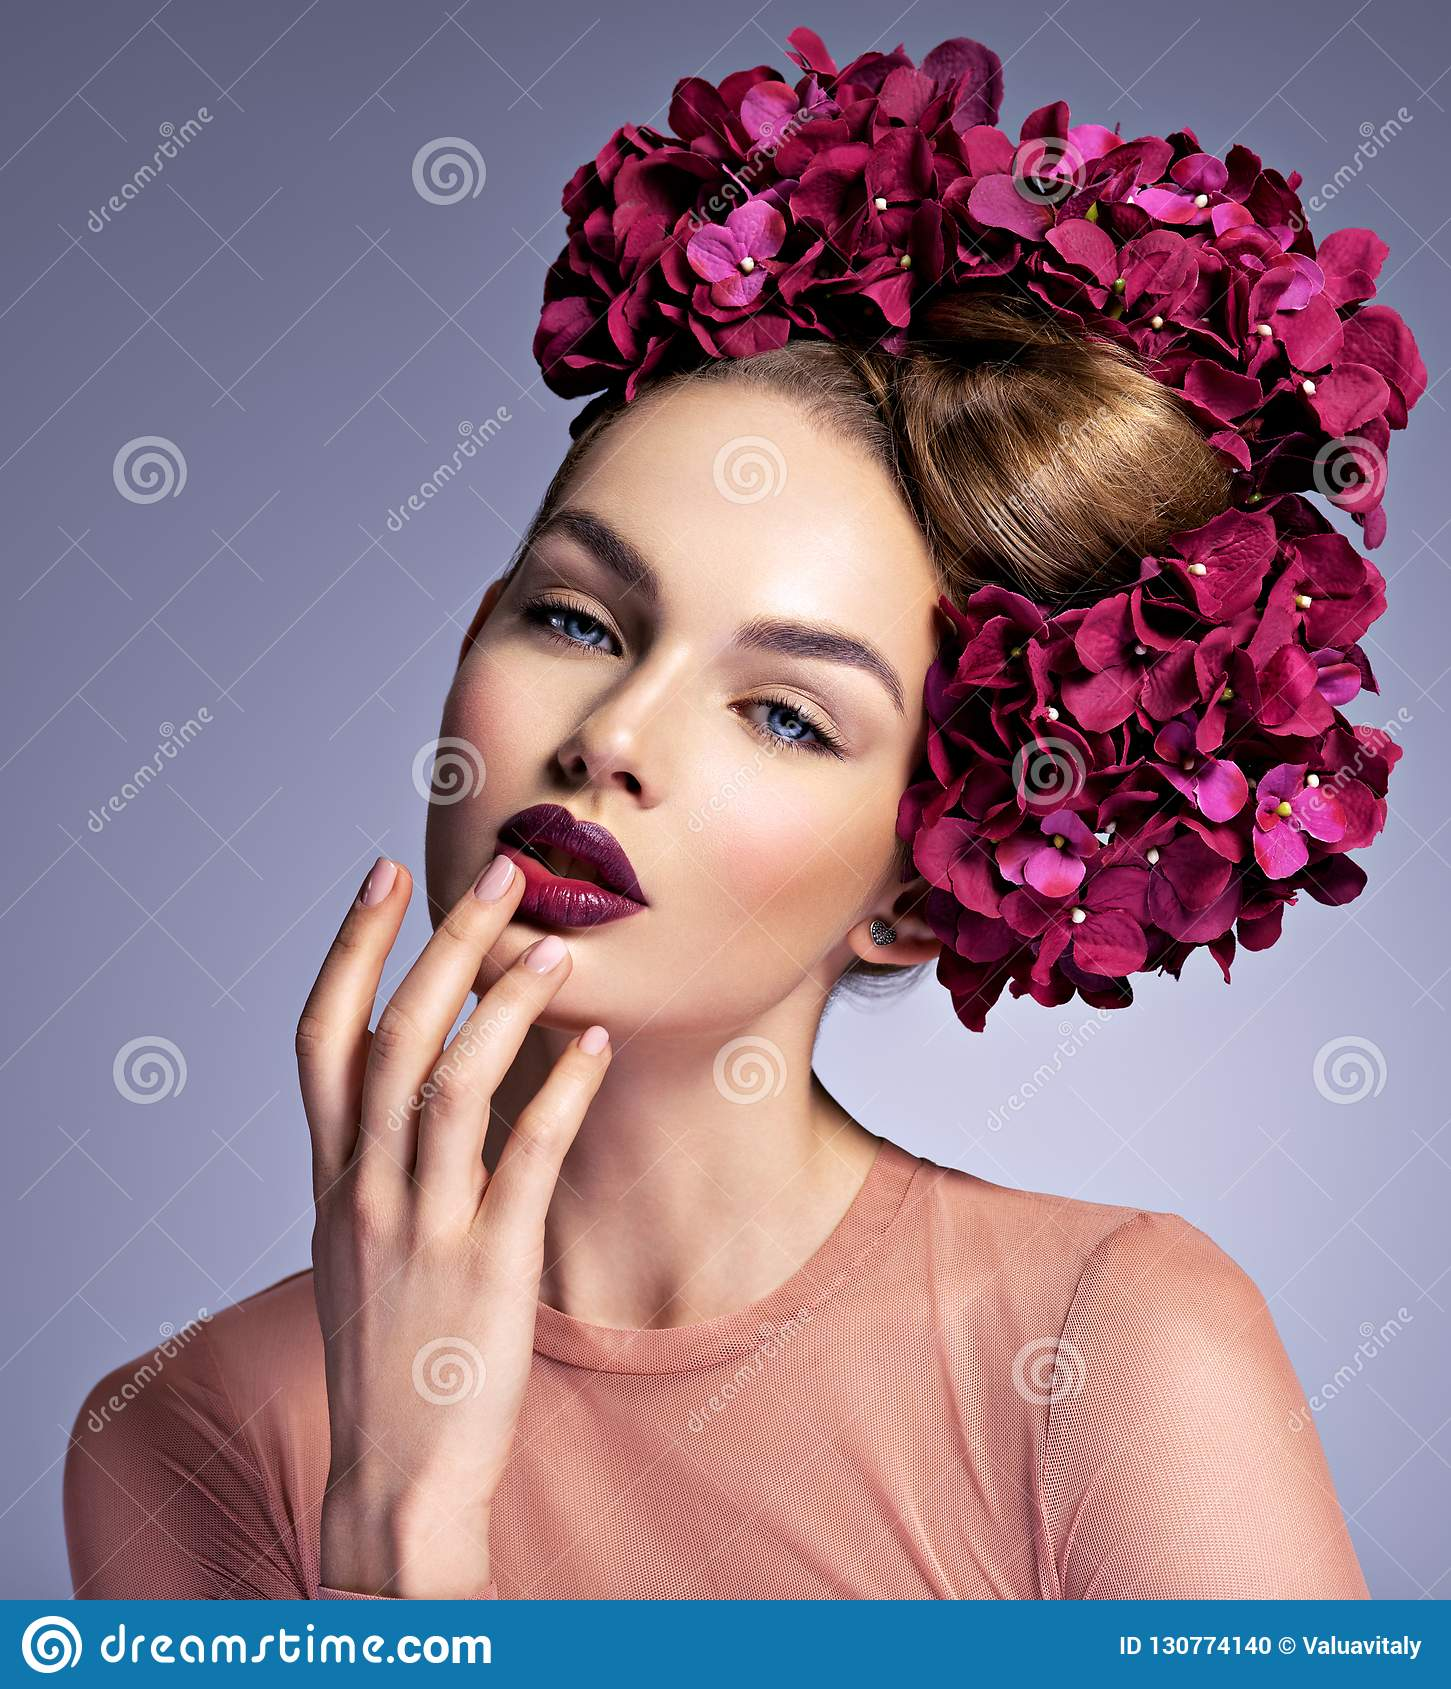 Girl with a creative hairstyle and blossoming flowers.